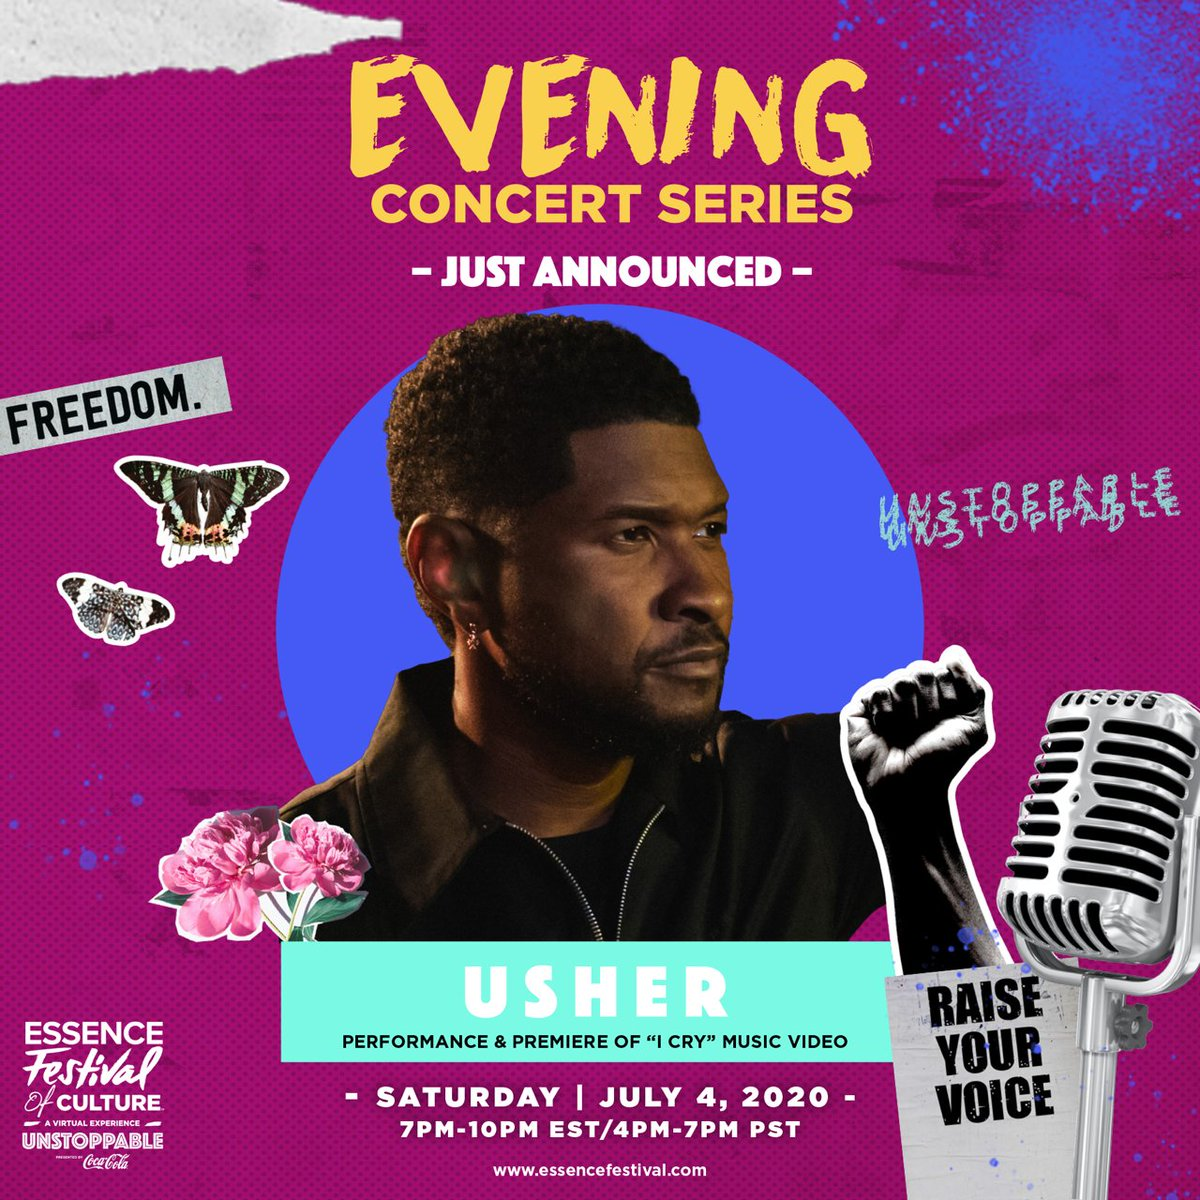 """JUST ANNOUNCED: Catch me during the unstoppable @essencefest virtual Evening concert series TOMORROW Saturday, July 4th starting at 7PM. I will be premiering my new video """"I Cry."""" Follow along @essencefest on socials and visit https://t.co/ngaJEtlYzt to see schedules and RSVP. https://t.co/u8fgidl6GR"""